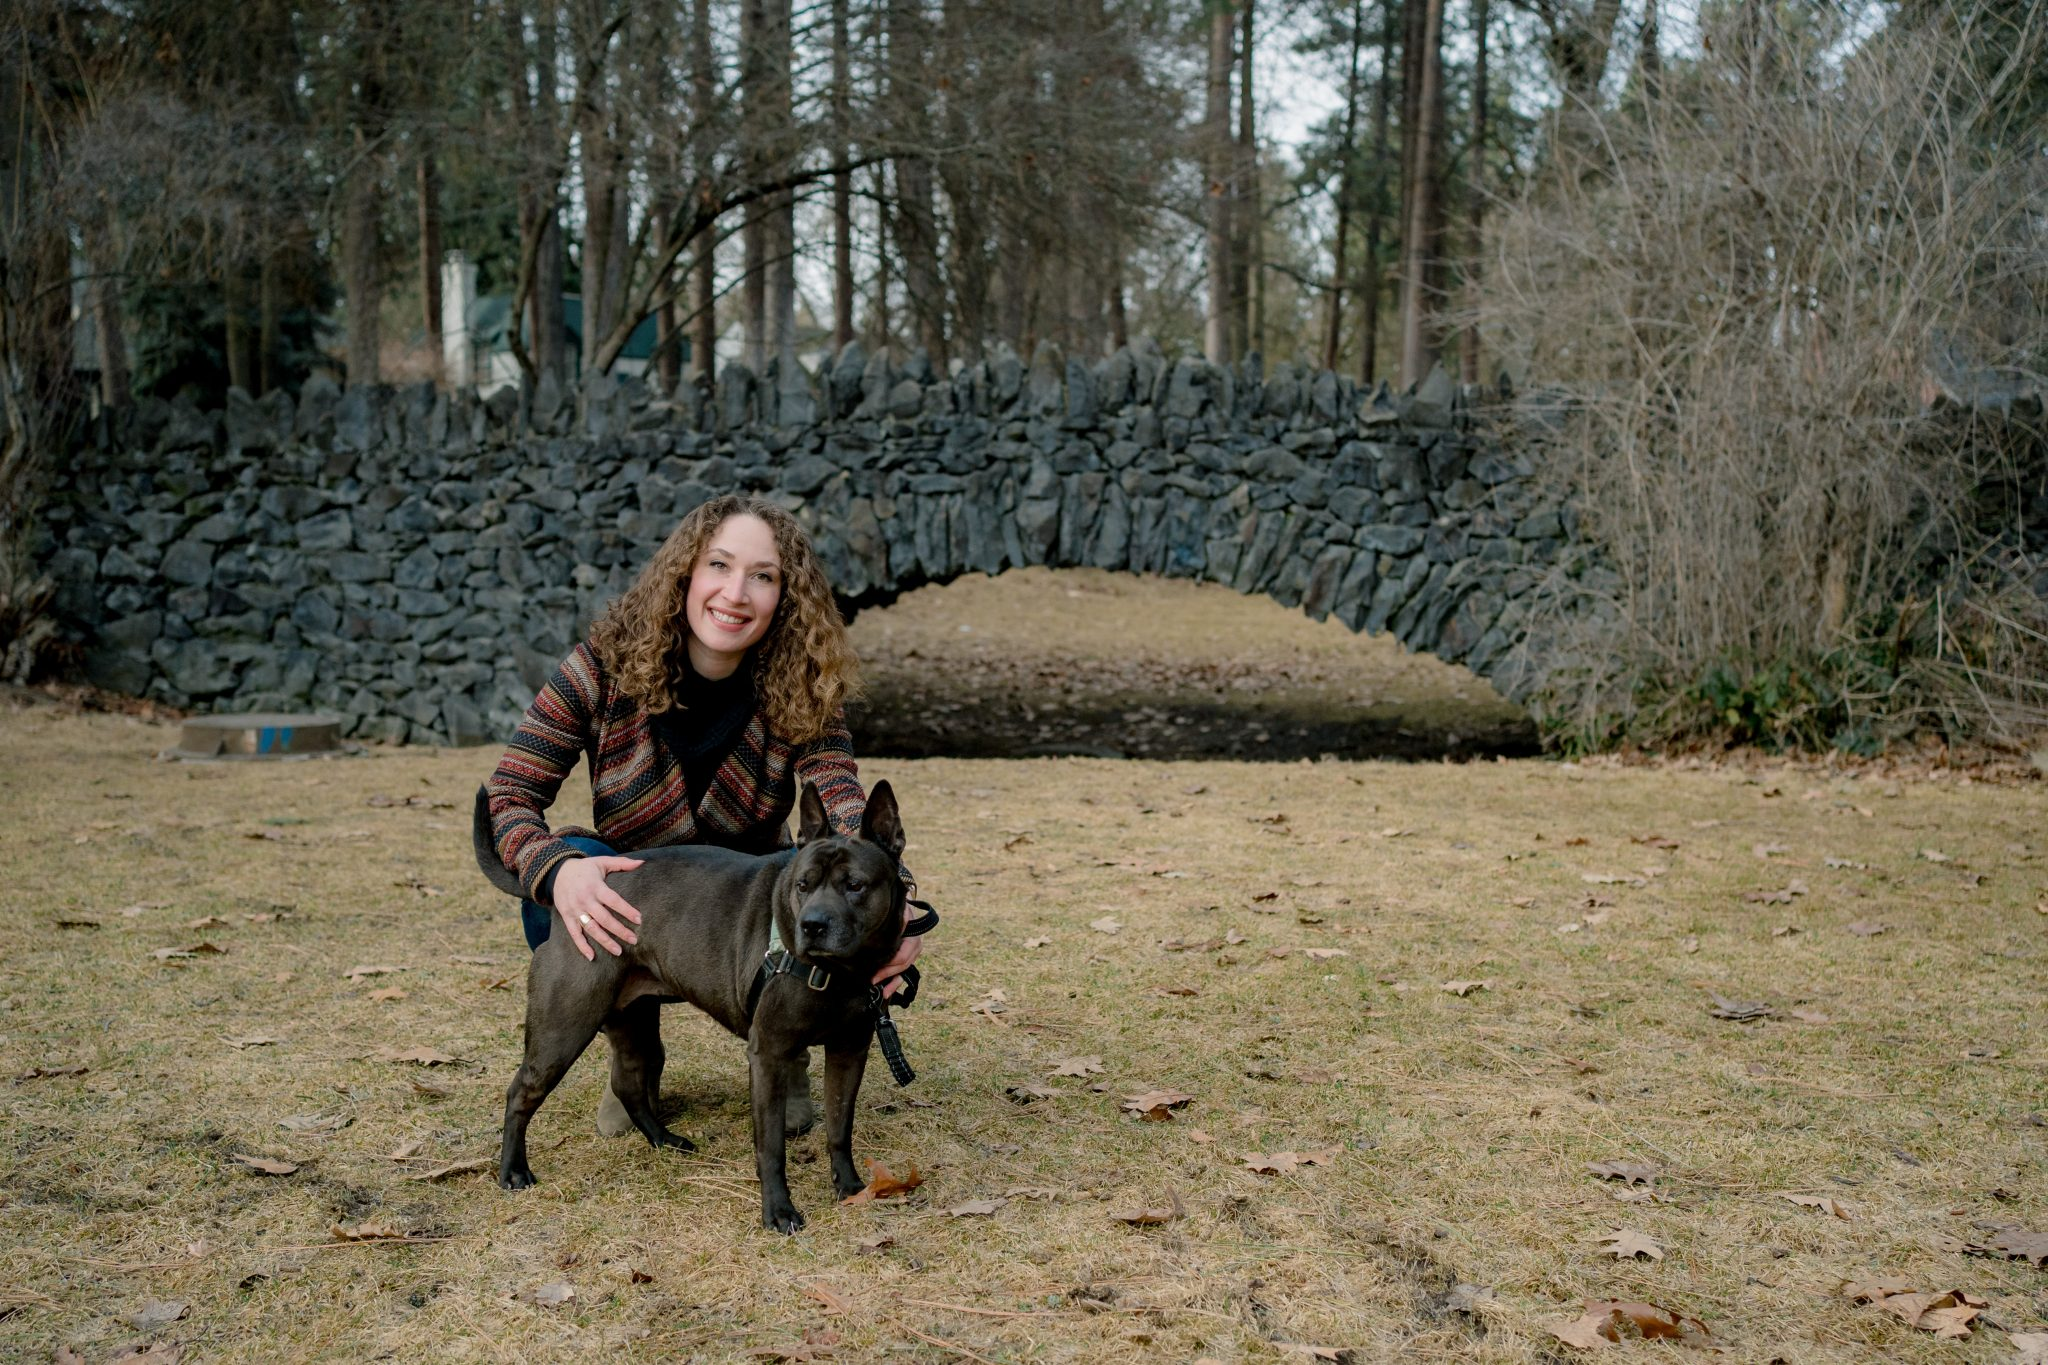 portrait of woman with dog in a park